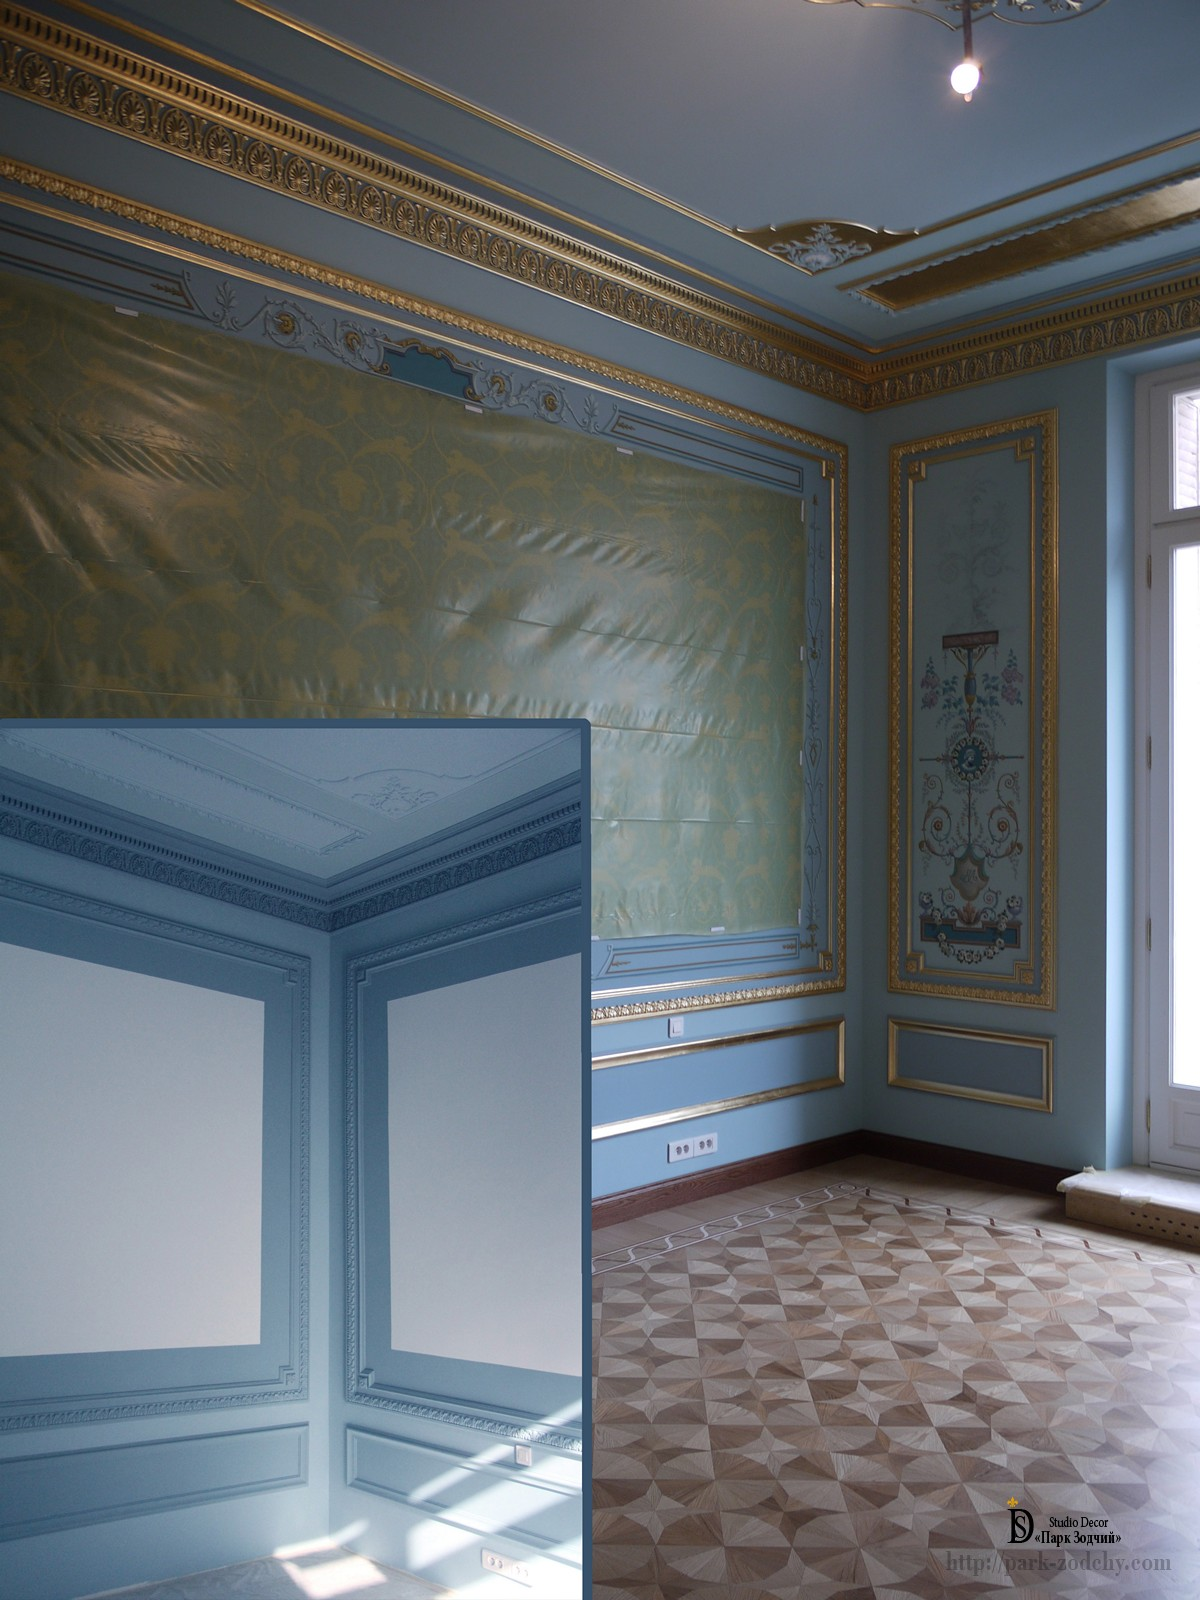 Stages of painting architectural mirrors in the interior